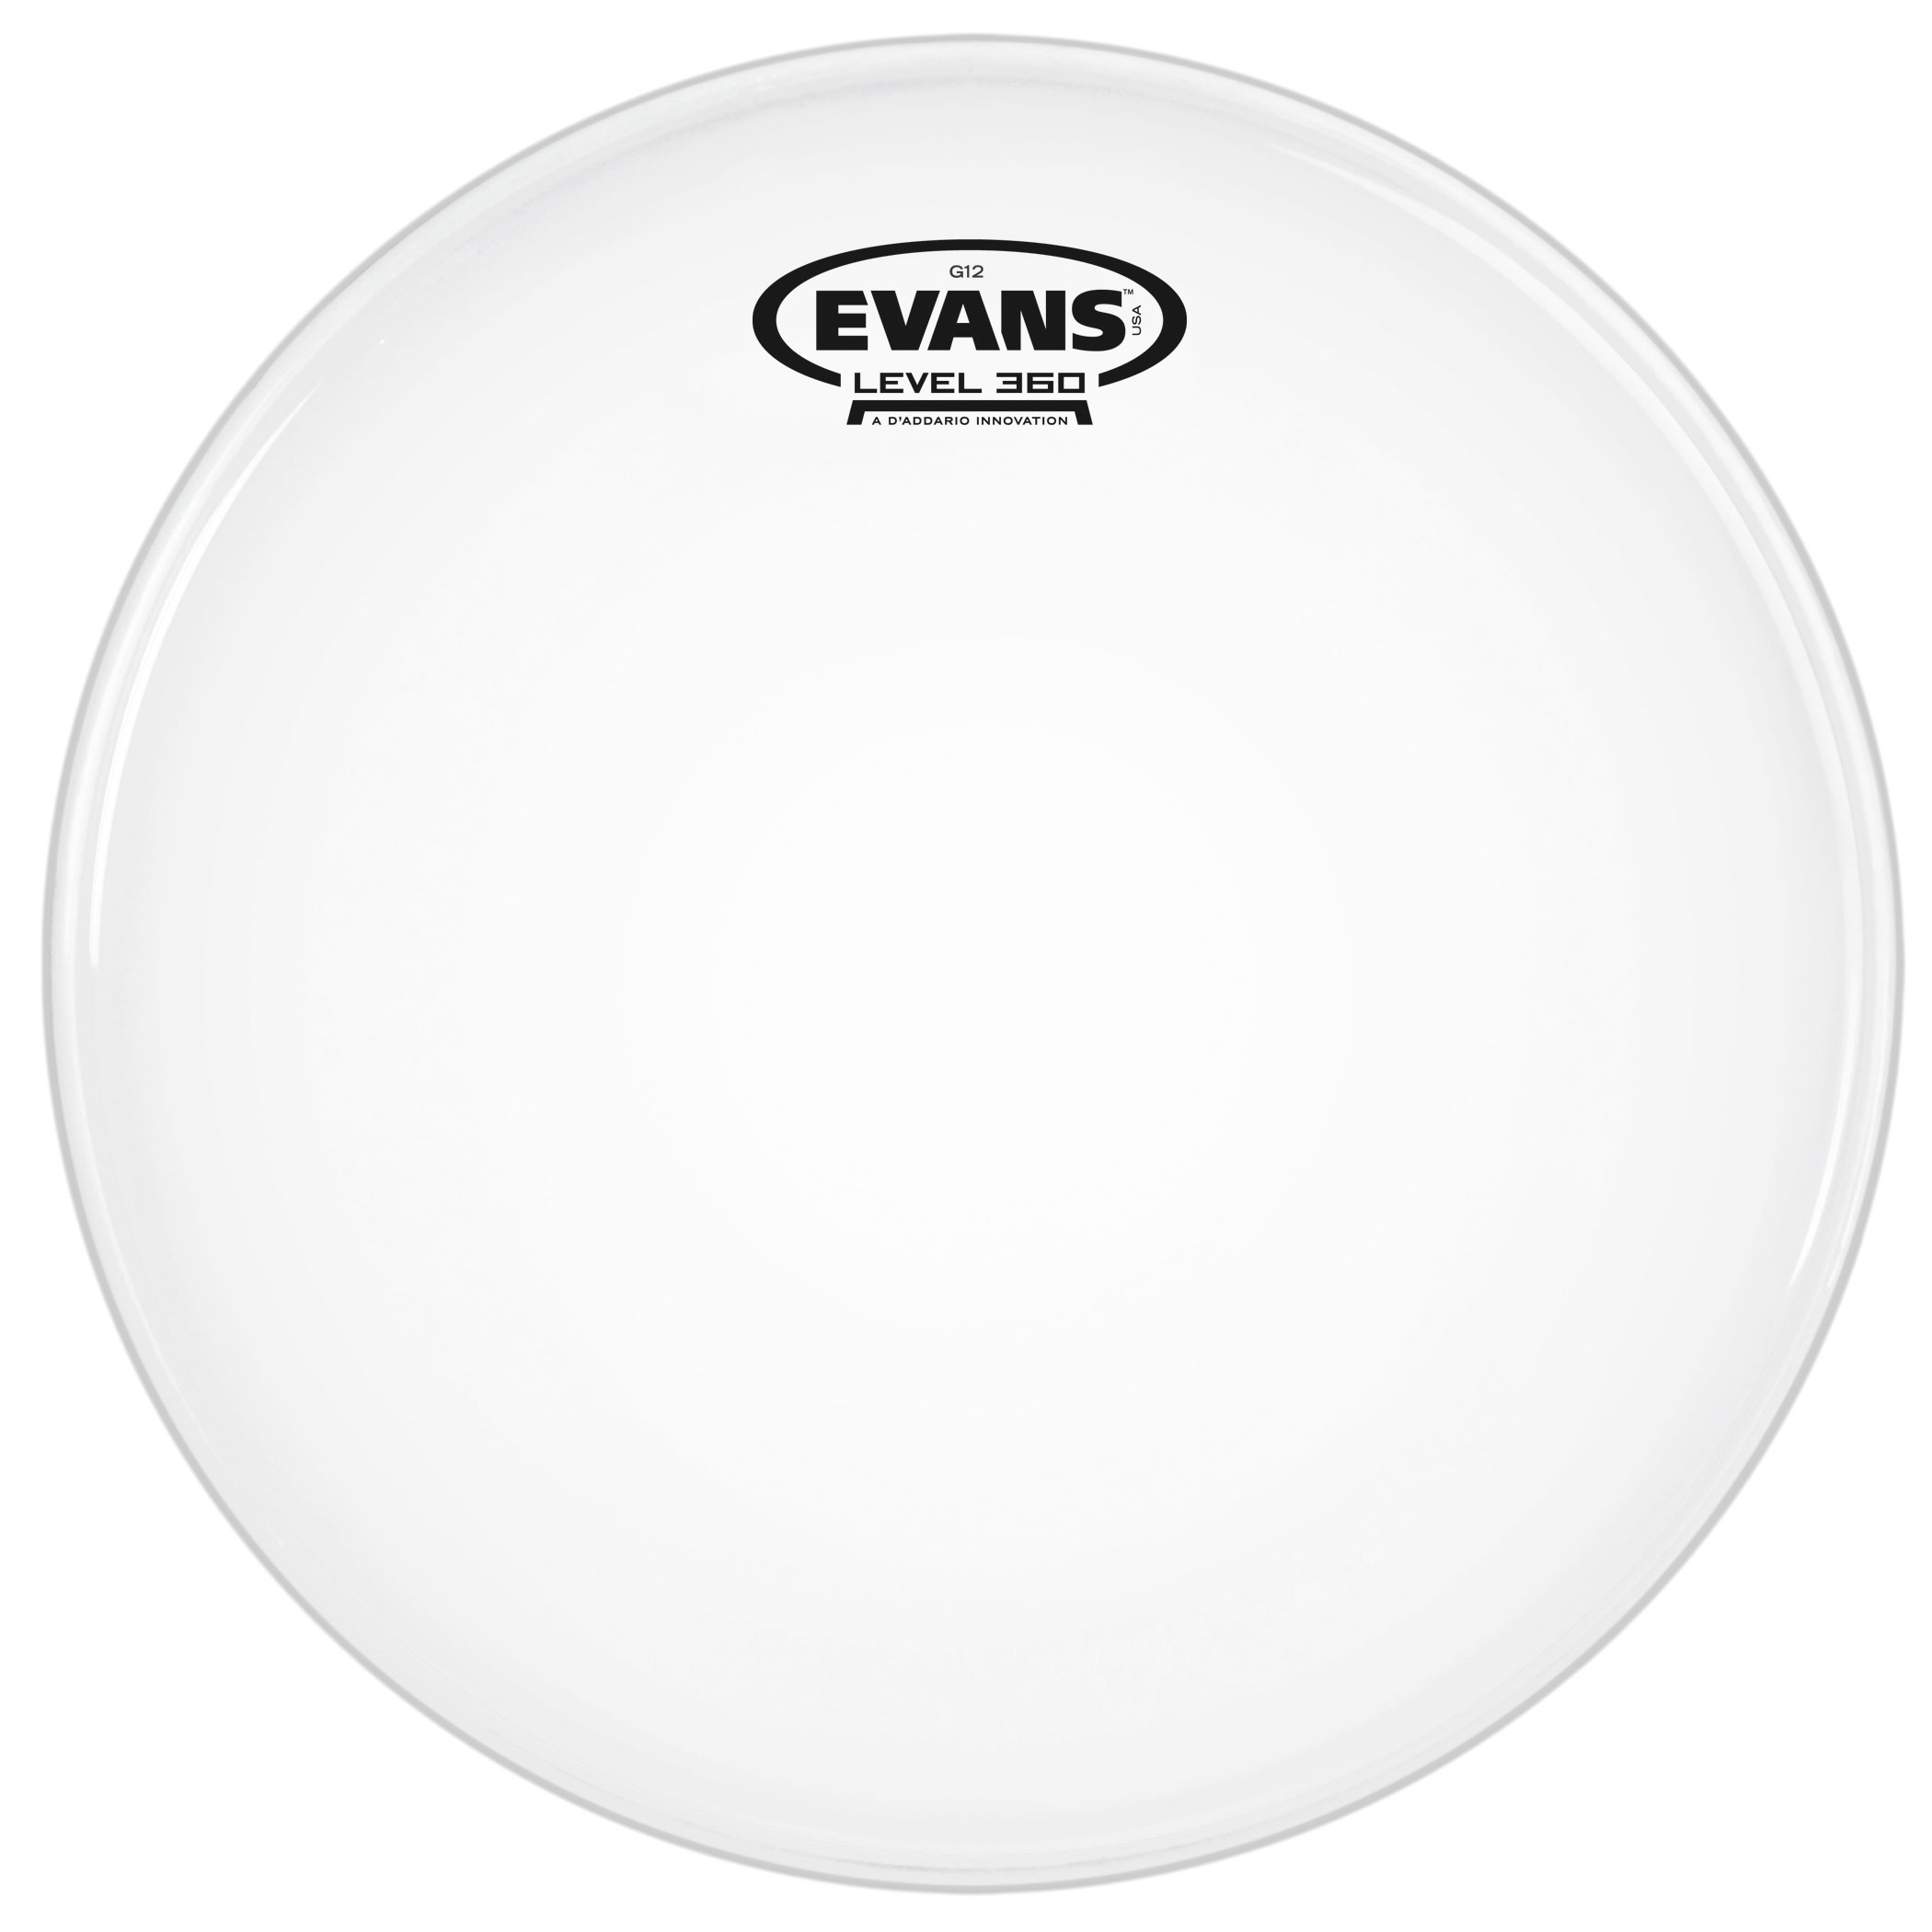 "Evans 16"" G12 Coated Head"